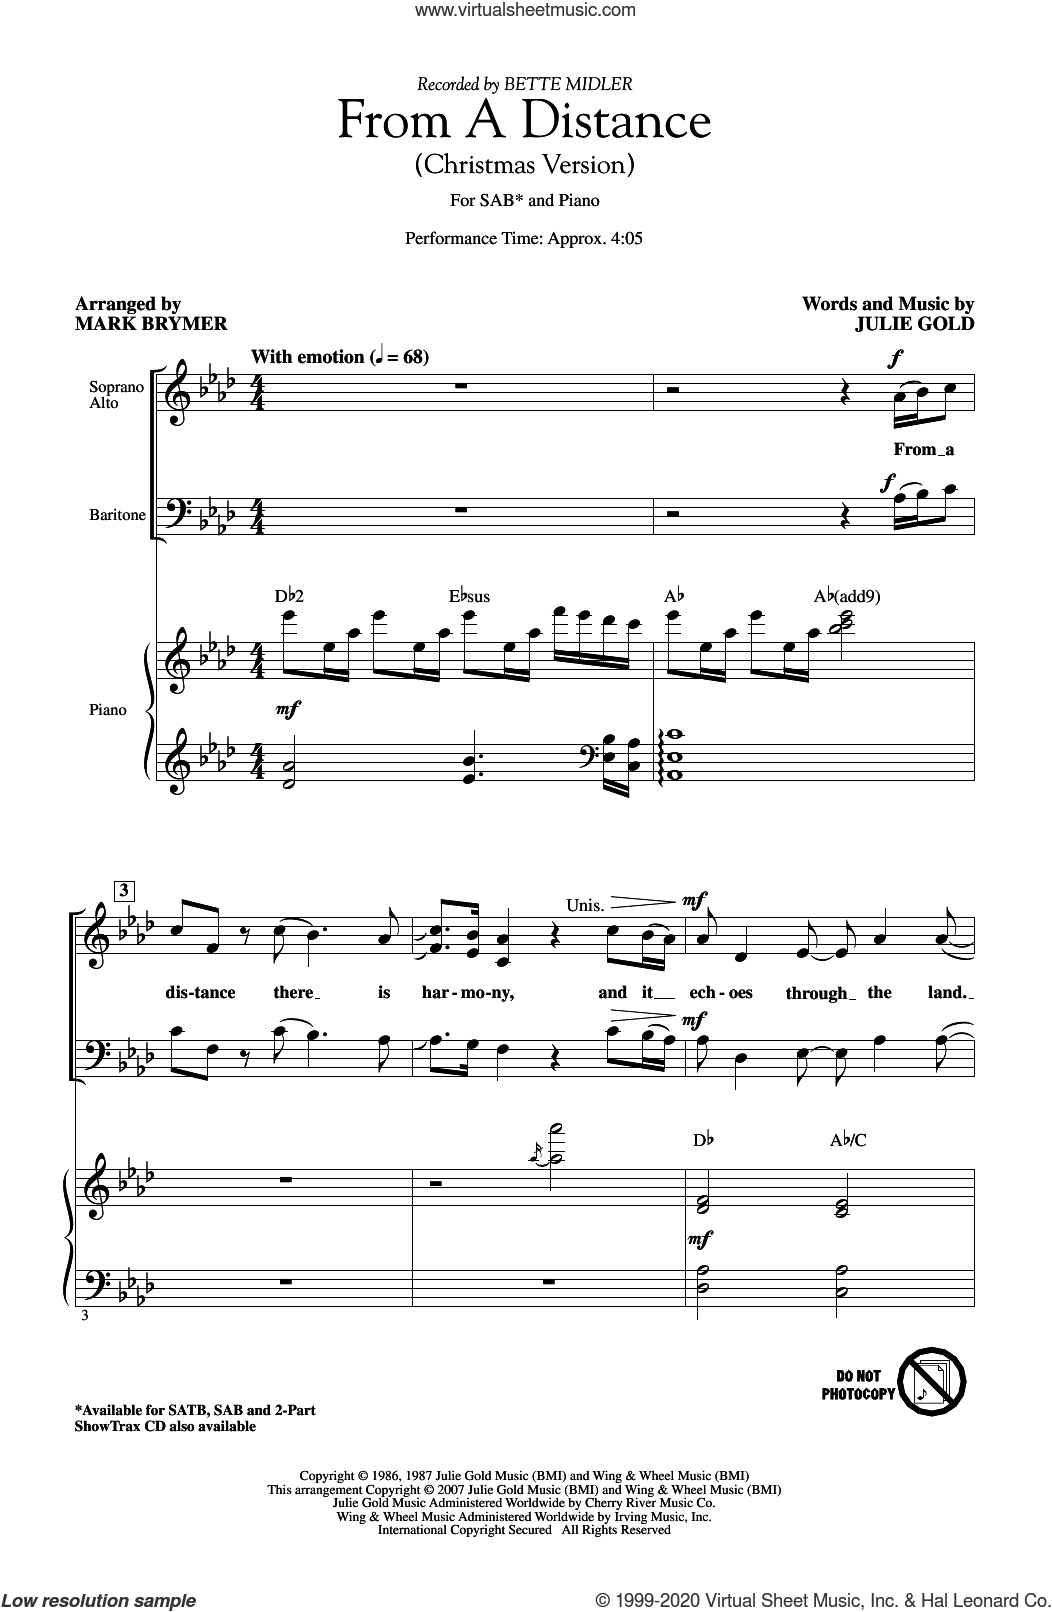 From A Distance (Christmas Version) (arr. Mark Brymer) sheet music for choir (SAB: soprano, alto, bass) by Bette Midler, Mark Brymer and Julie Gold, intermediate skill level